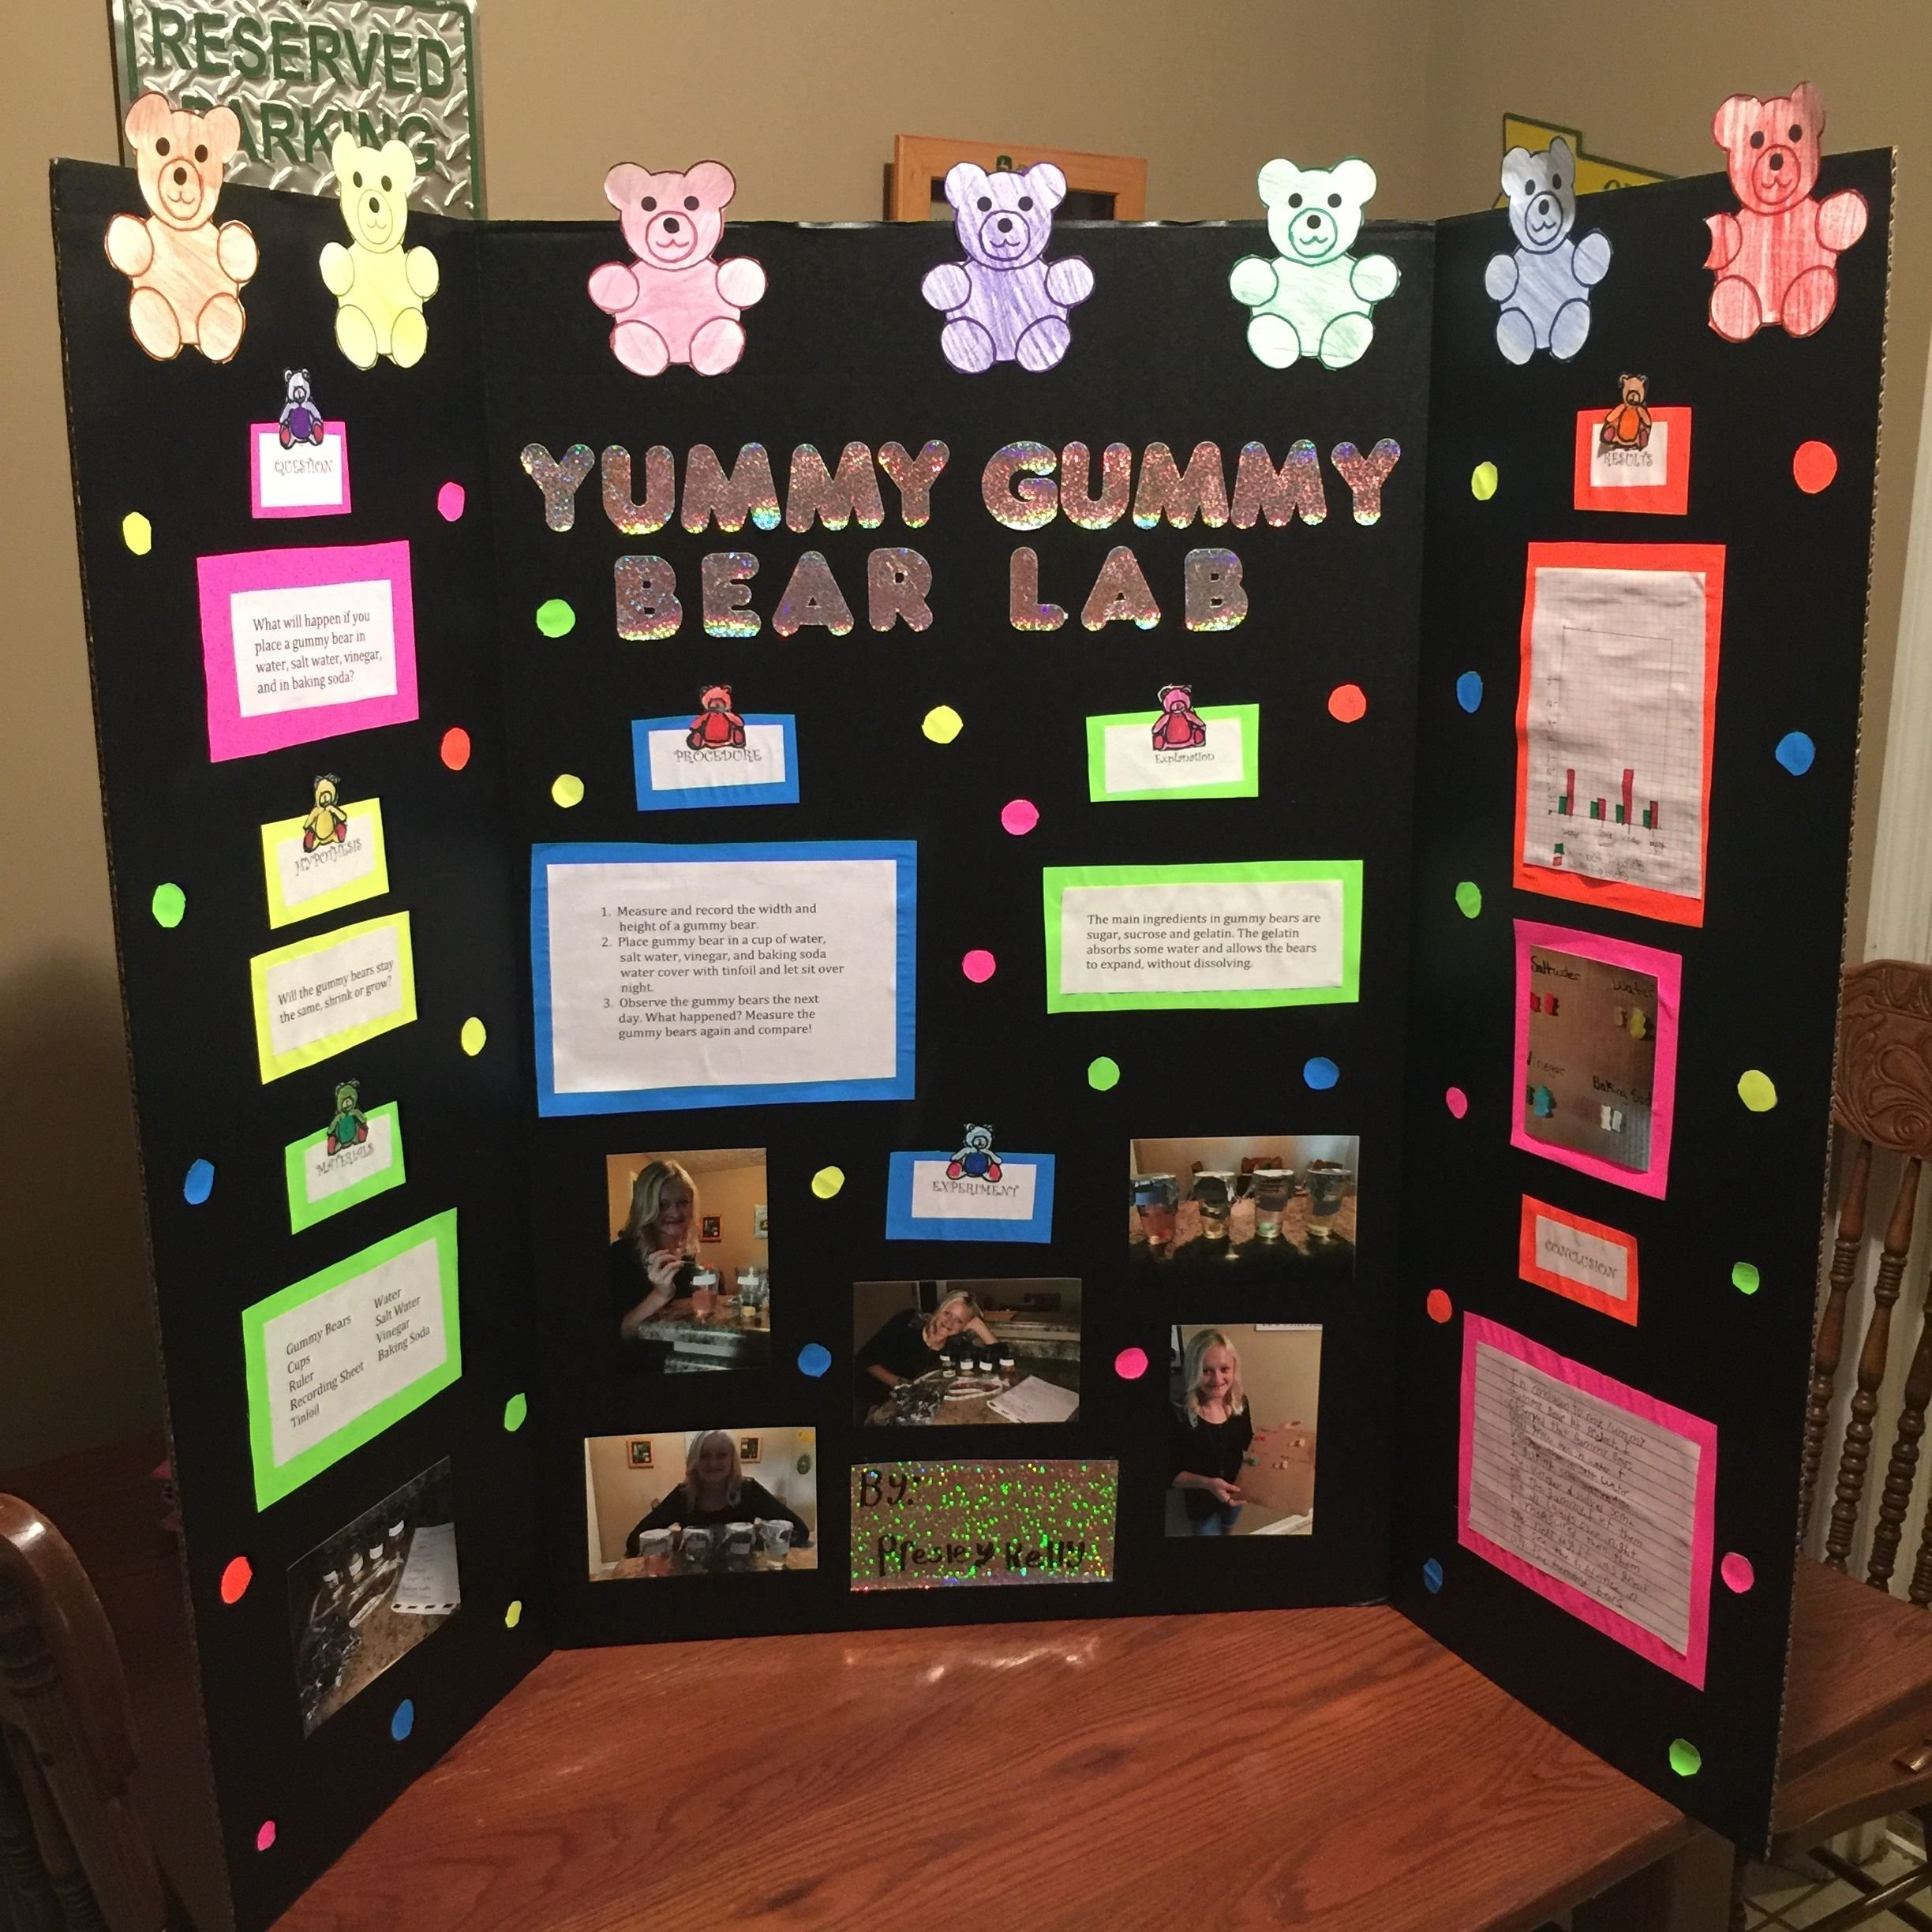 10 Most Popular Science Fair Project Ideas For Kids In 5Th Grade our 4th grade science fair project yummy gummy bear lab lots of 10